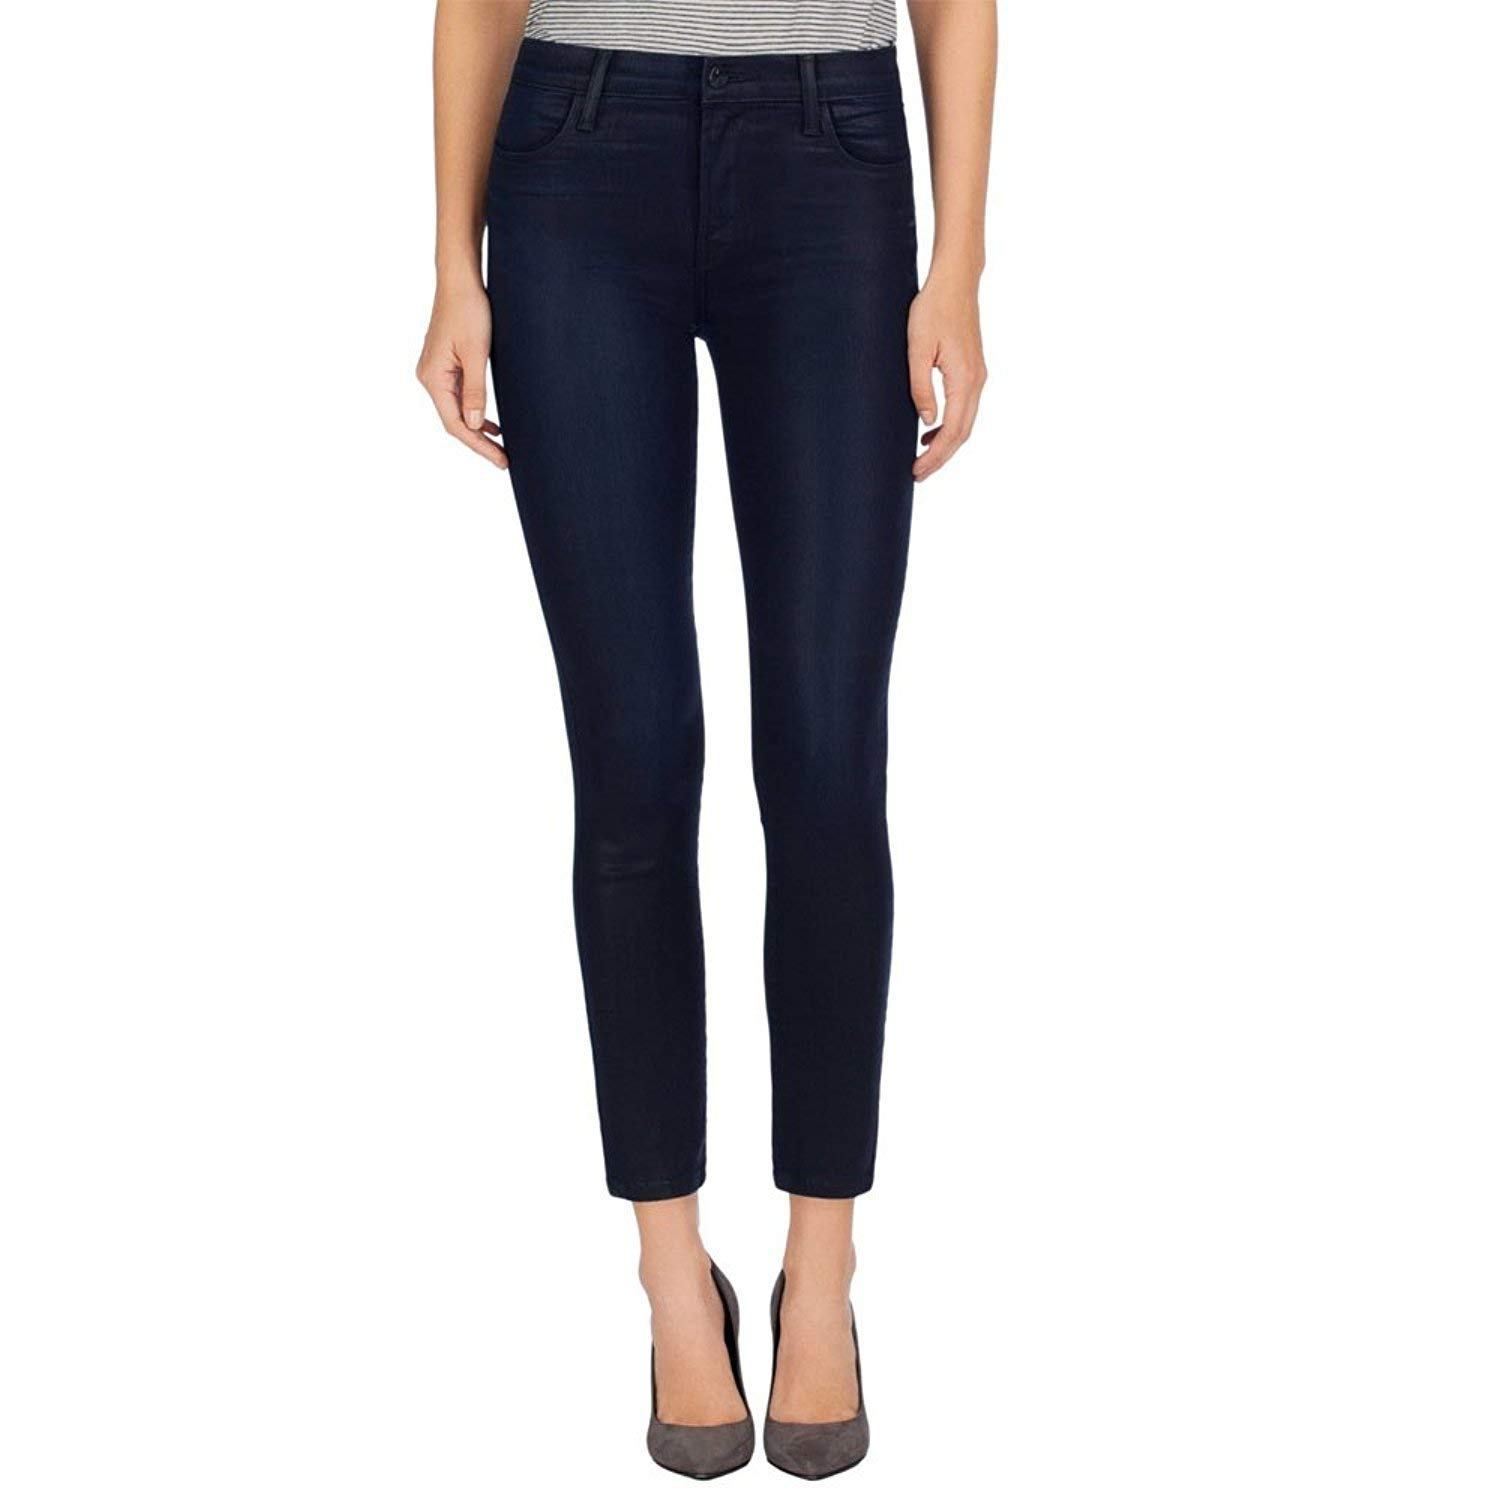 J Brand Women's Alana High-Rise Coated Super Skinny Jeans In Indigo Elixir Size 24